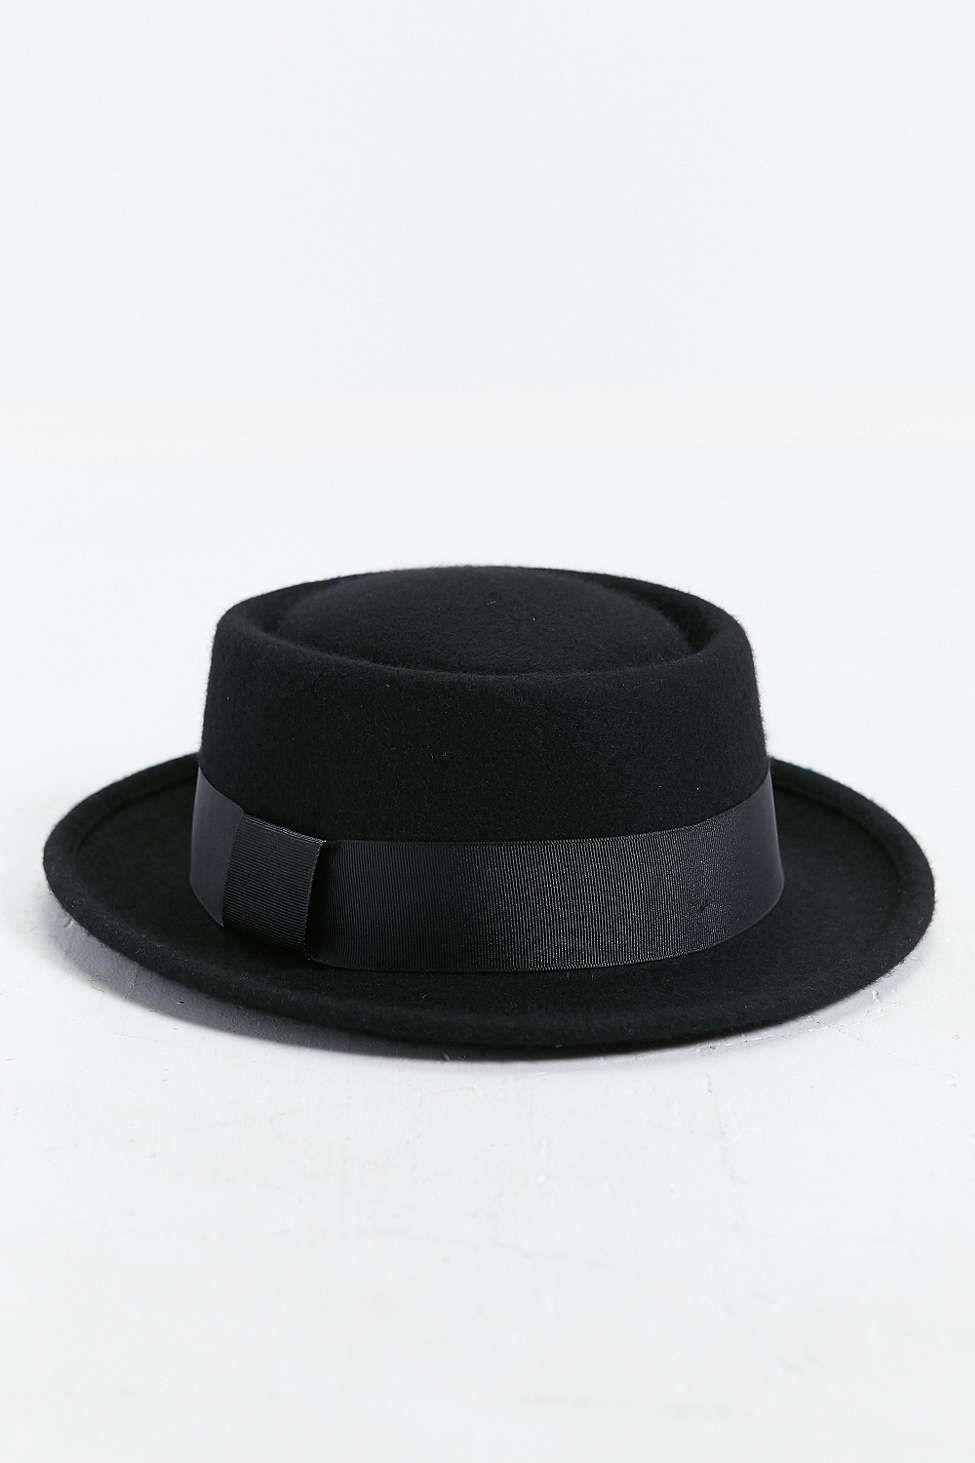 802cfbc622740 Rosin Felted Pork Pie Hat